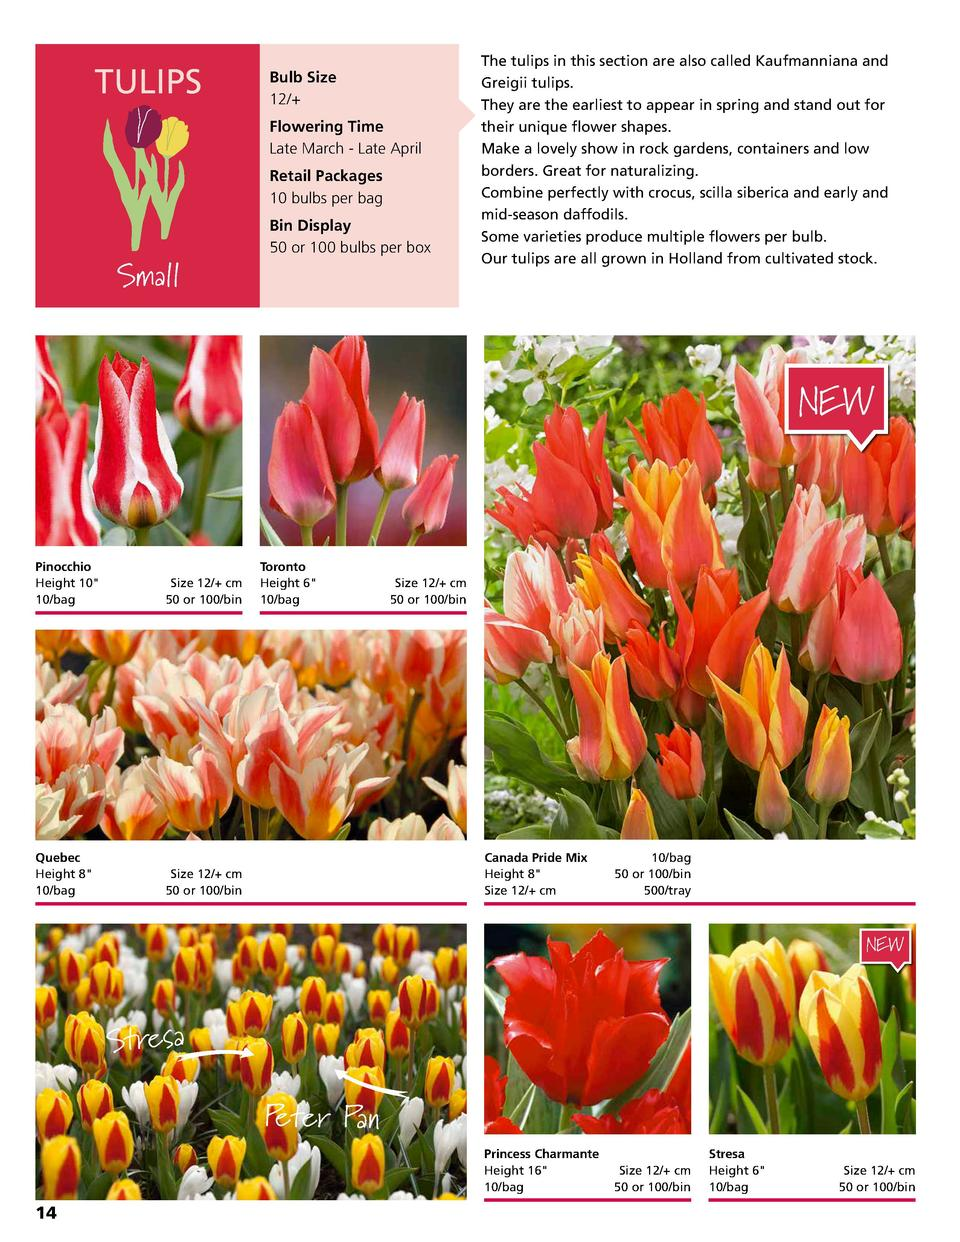 TULIPS  Bulb Size 12   Flowering Time Late March - Late April Retail Packages 10 bulbs per bag Bin Display 50 or 100 bulbs...